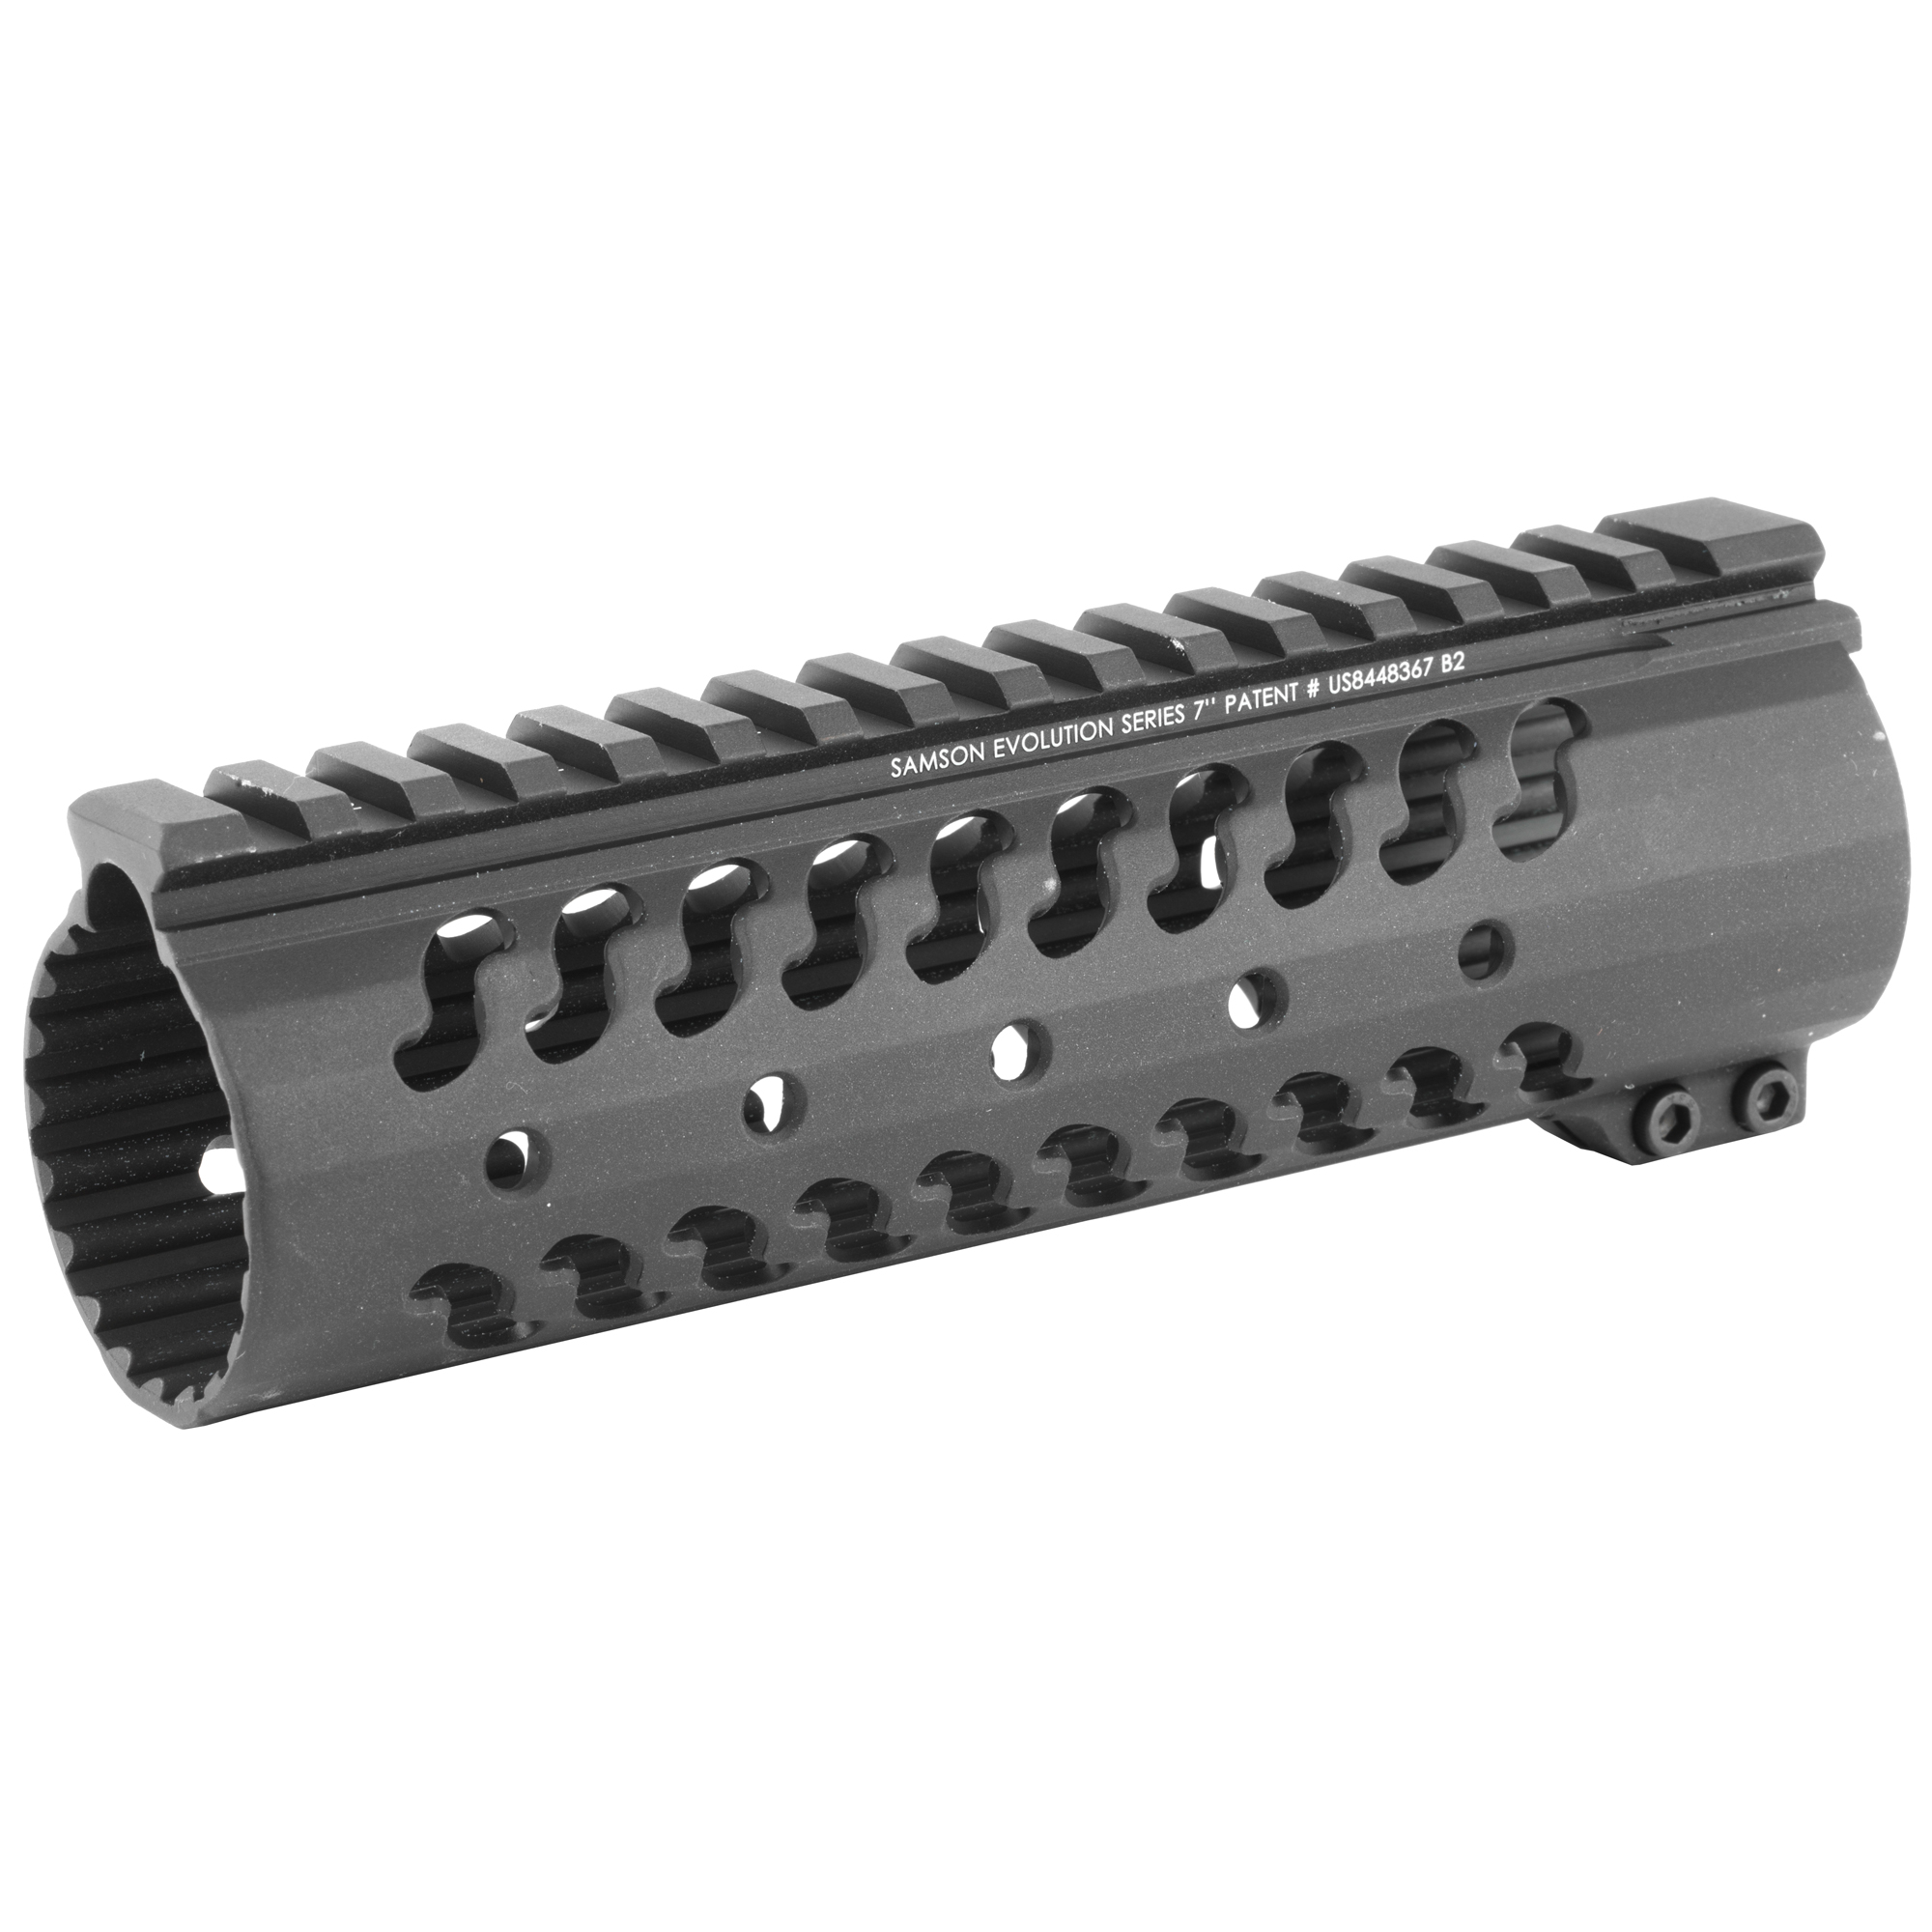 """The Samson Evolution Series features a free-floating AR-15 rail system. Being lightweight and durable allows the Samson Evolution Series to offer the perfect upgrade for 3-Gun competition shooting"""" law enforcement and military personnel or weekend enthusiasts. Accessory picatinny rails can be added or removed at any of 7 positions around the rail and any place along the length of the tube. Rail accommodates most piston systems. This is the 7"""" Evolution Rail for the AR-15.Standard Evolution Series Includes: Thermal bushings"""" Two (2) 2"""" accessory rail kits"""" One (1) 4"""" accessory rail kit and wrenches."""